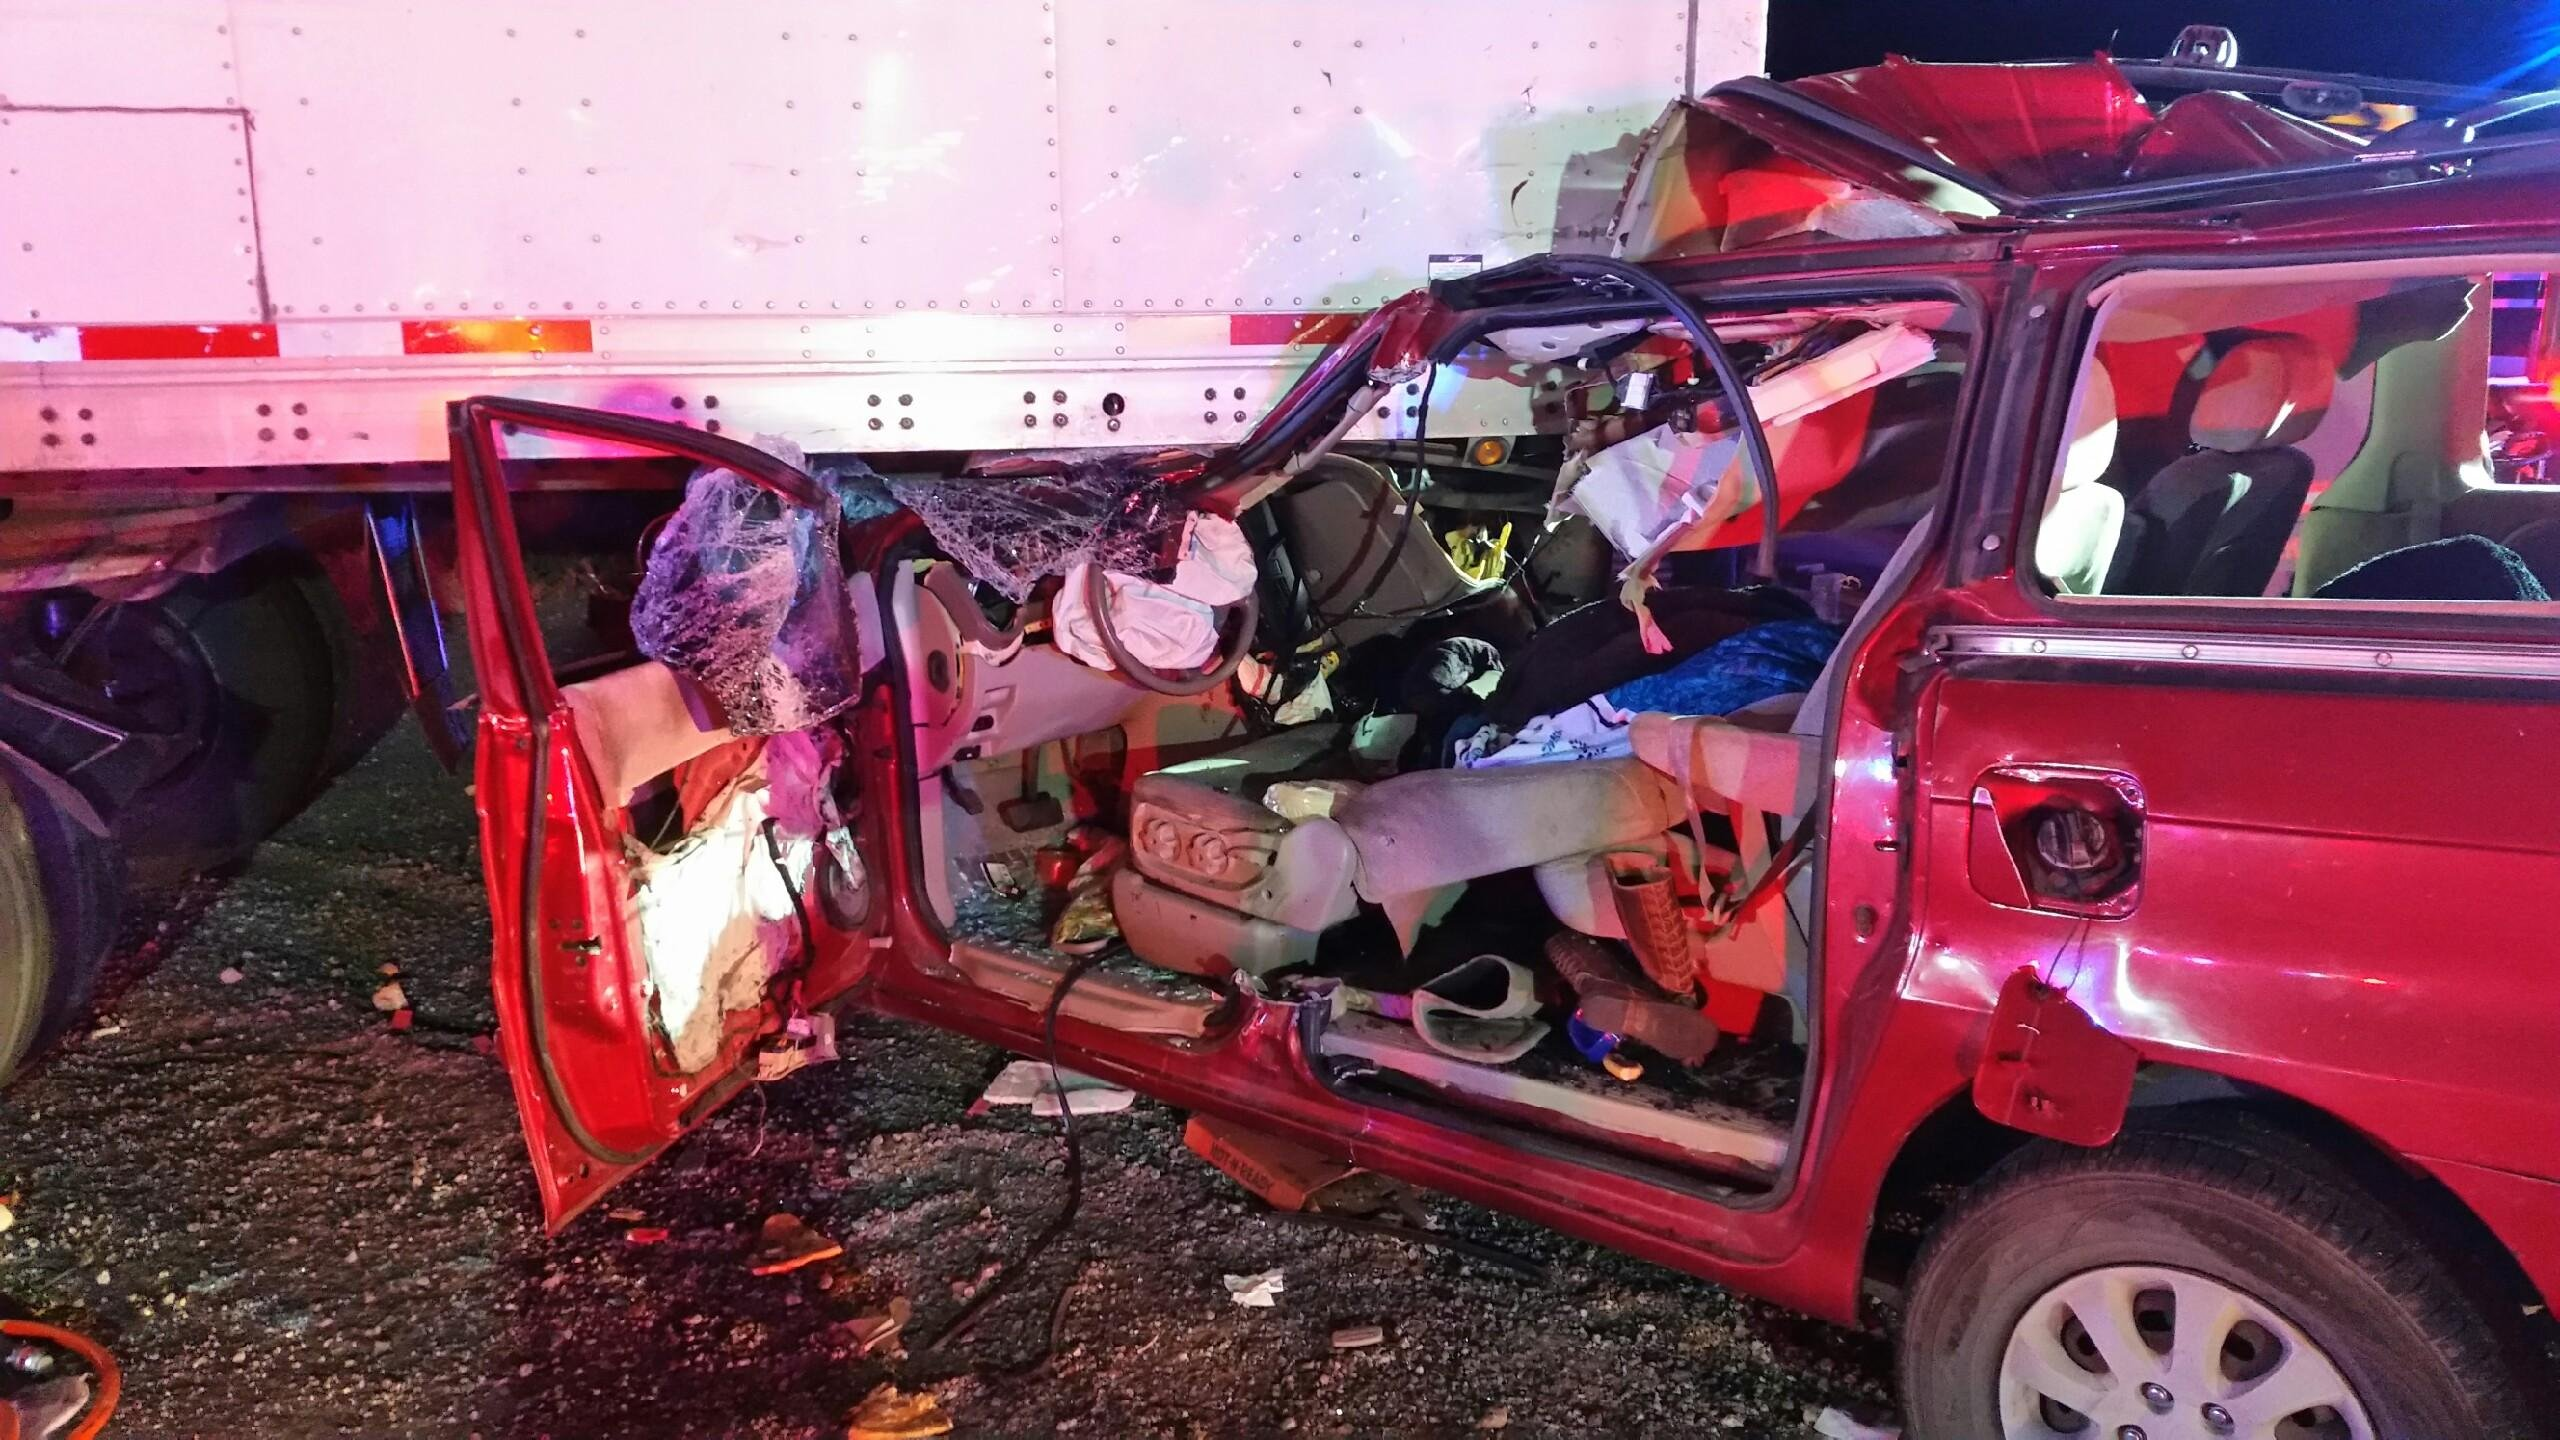 Two children were extracted from this van after a crash involving a semi-truck Nov. 19, 2017 (NHP / FOX5).